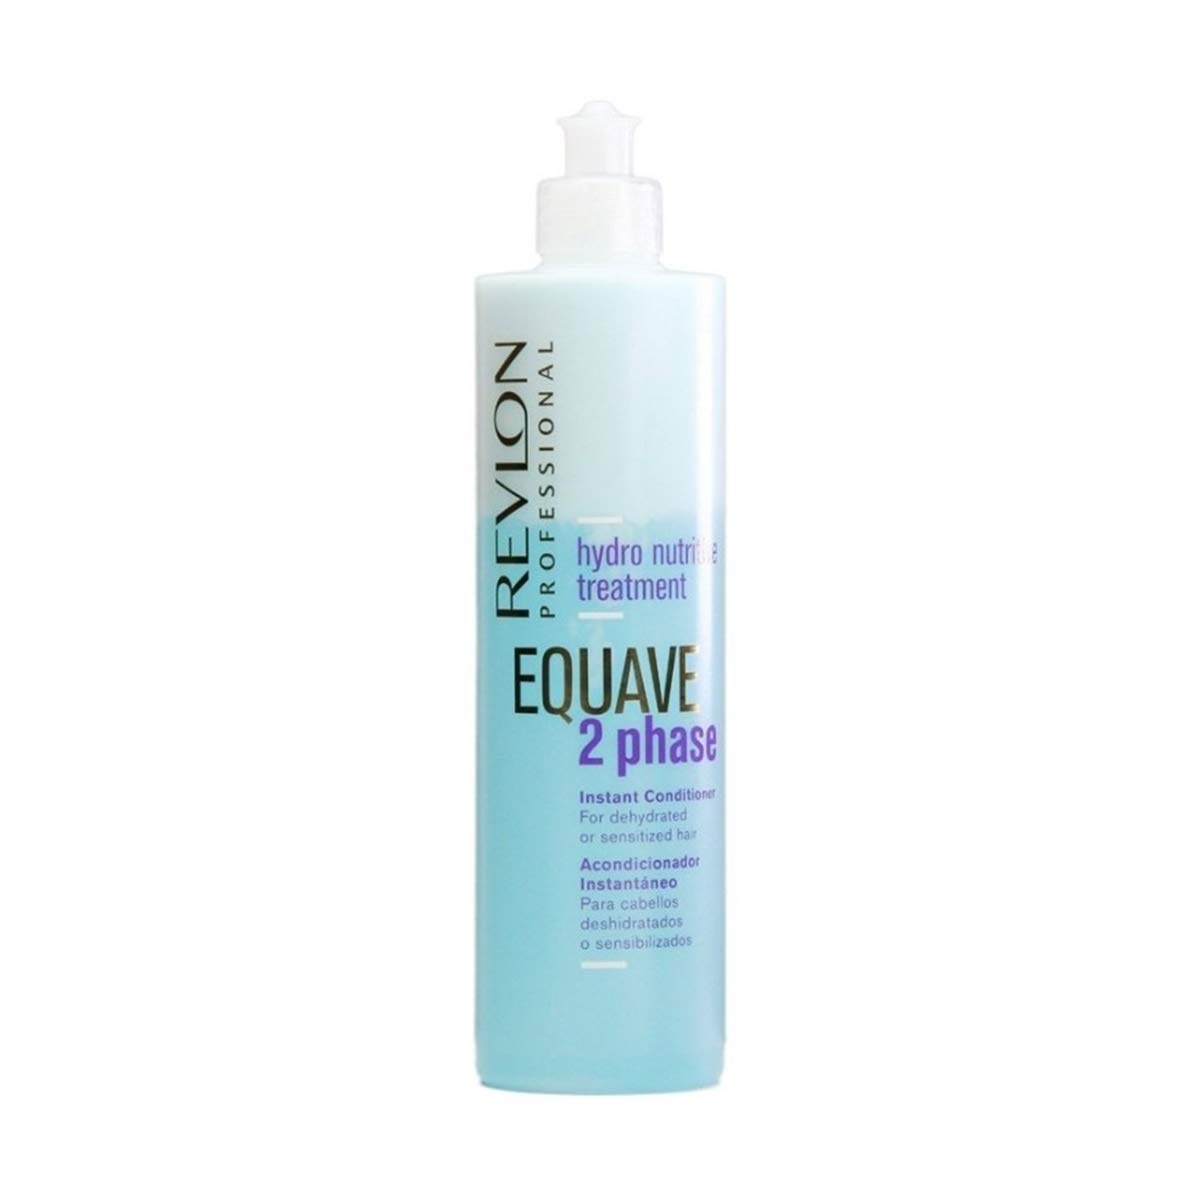 Equave 2 Phase Hydro Nutritive Treatment Instant Conditioner 500 ml